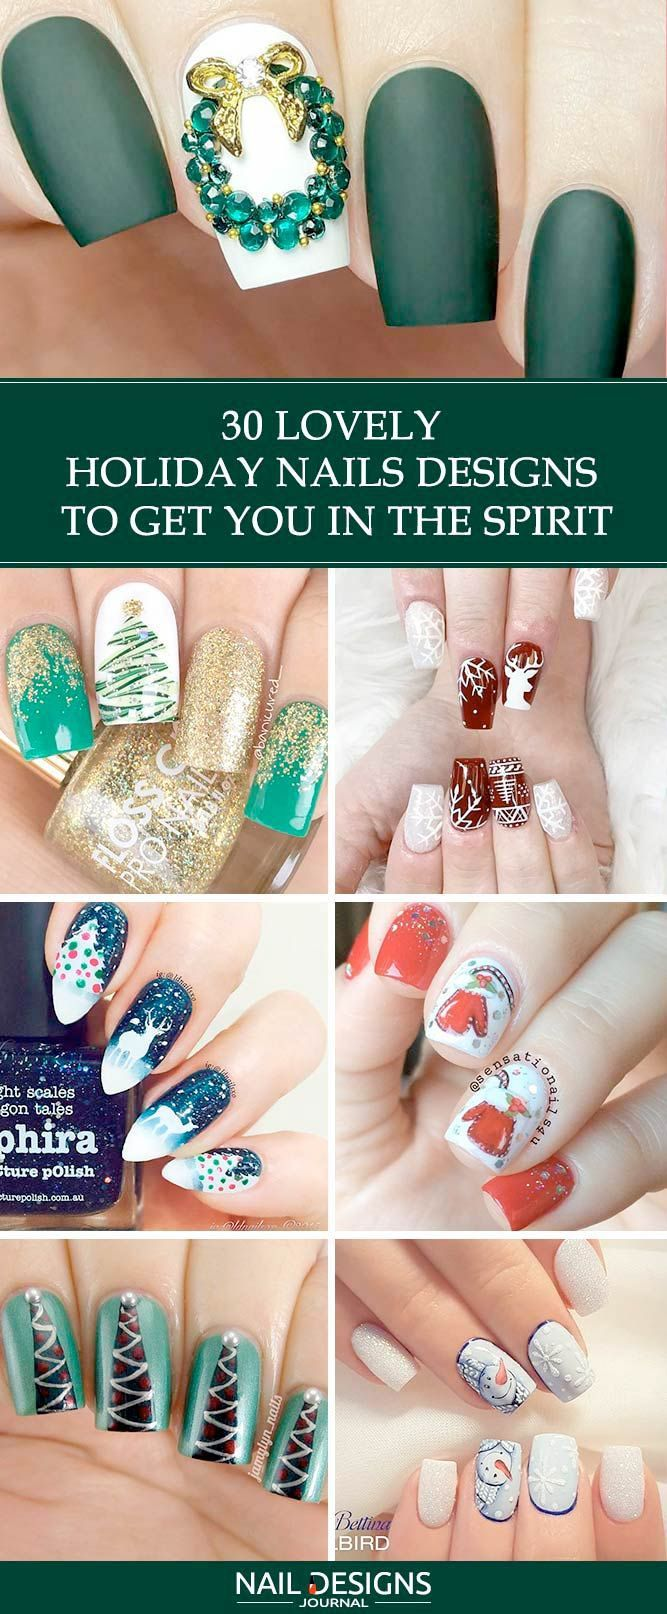 19 best Nails images on Pinterest | Baseball nail designs, Nail ...